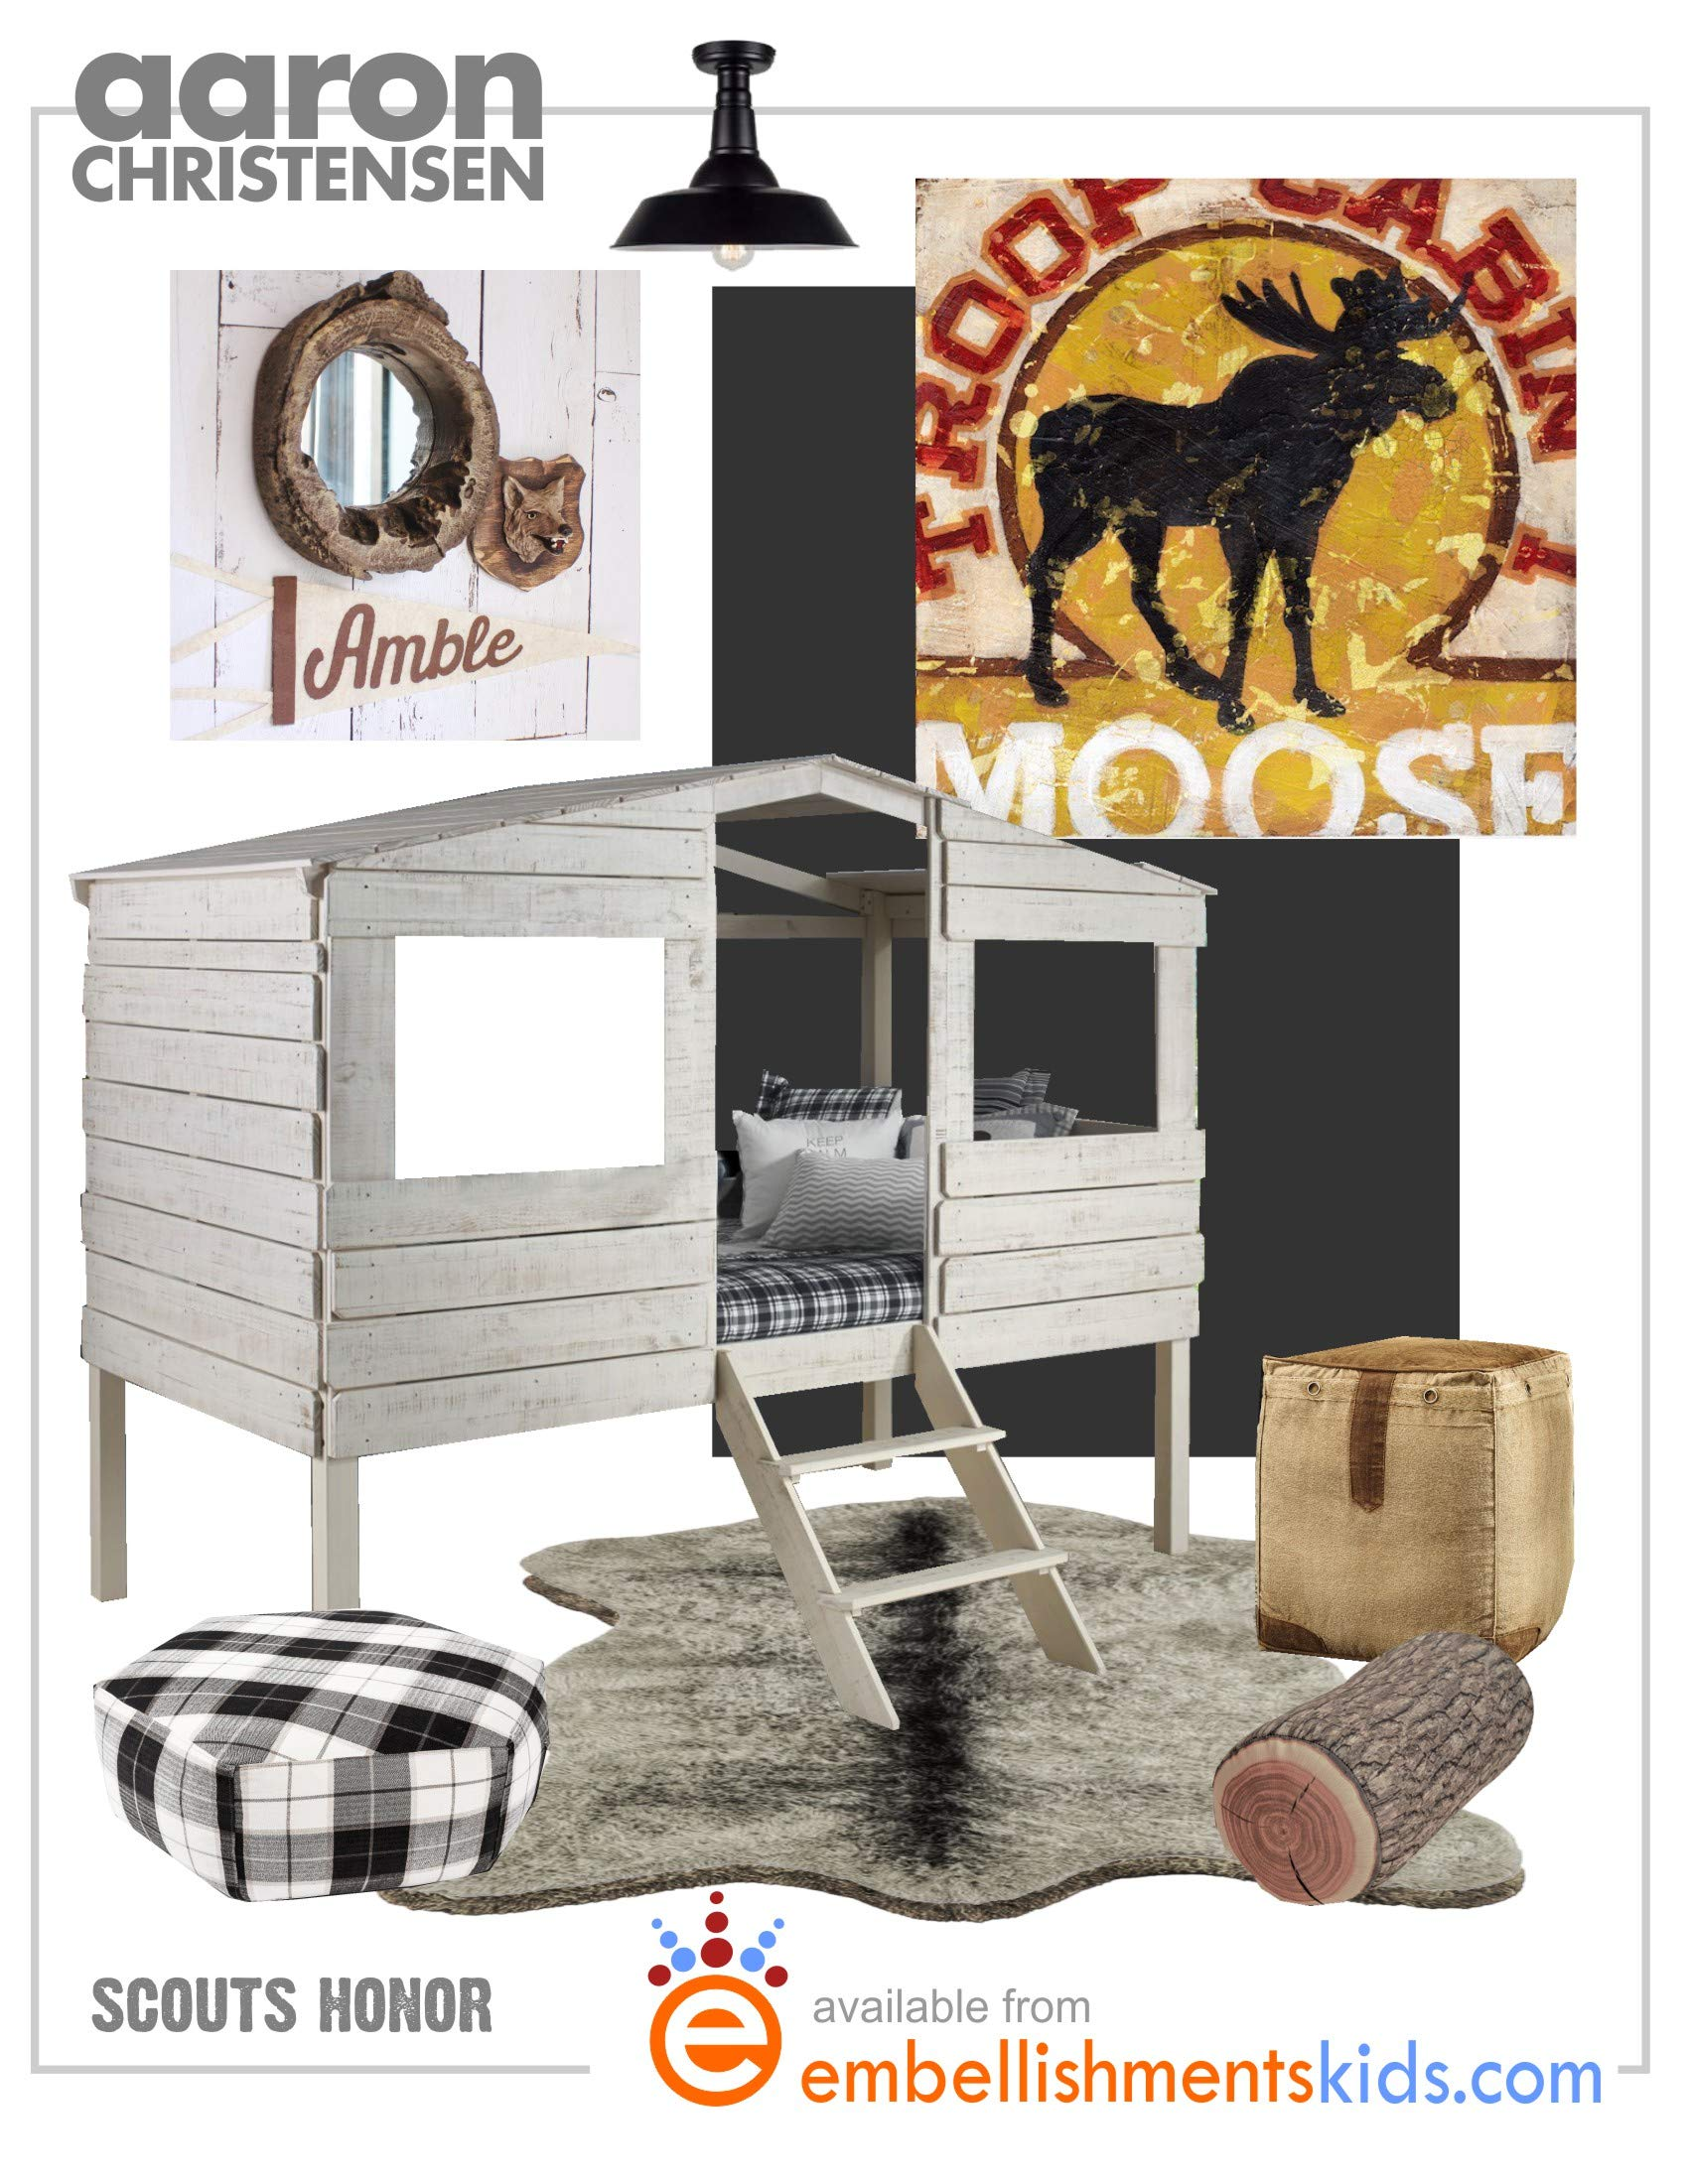 Moose Troop Cabin - Camping, Lodge, Scouting Wall Art Decor by Aaron Christensen Stretched Canvas Reproduction- Authentic Artist Direct. Multiple sizes listed. Made in my Portland, Oregon studio. by Aaron Christensen Embellishments Studio